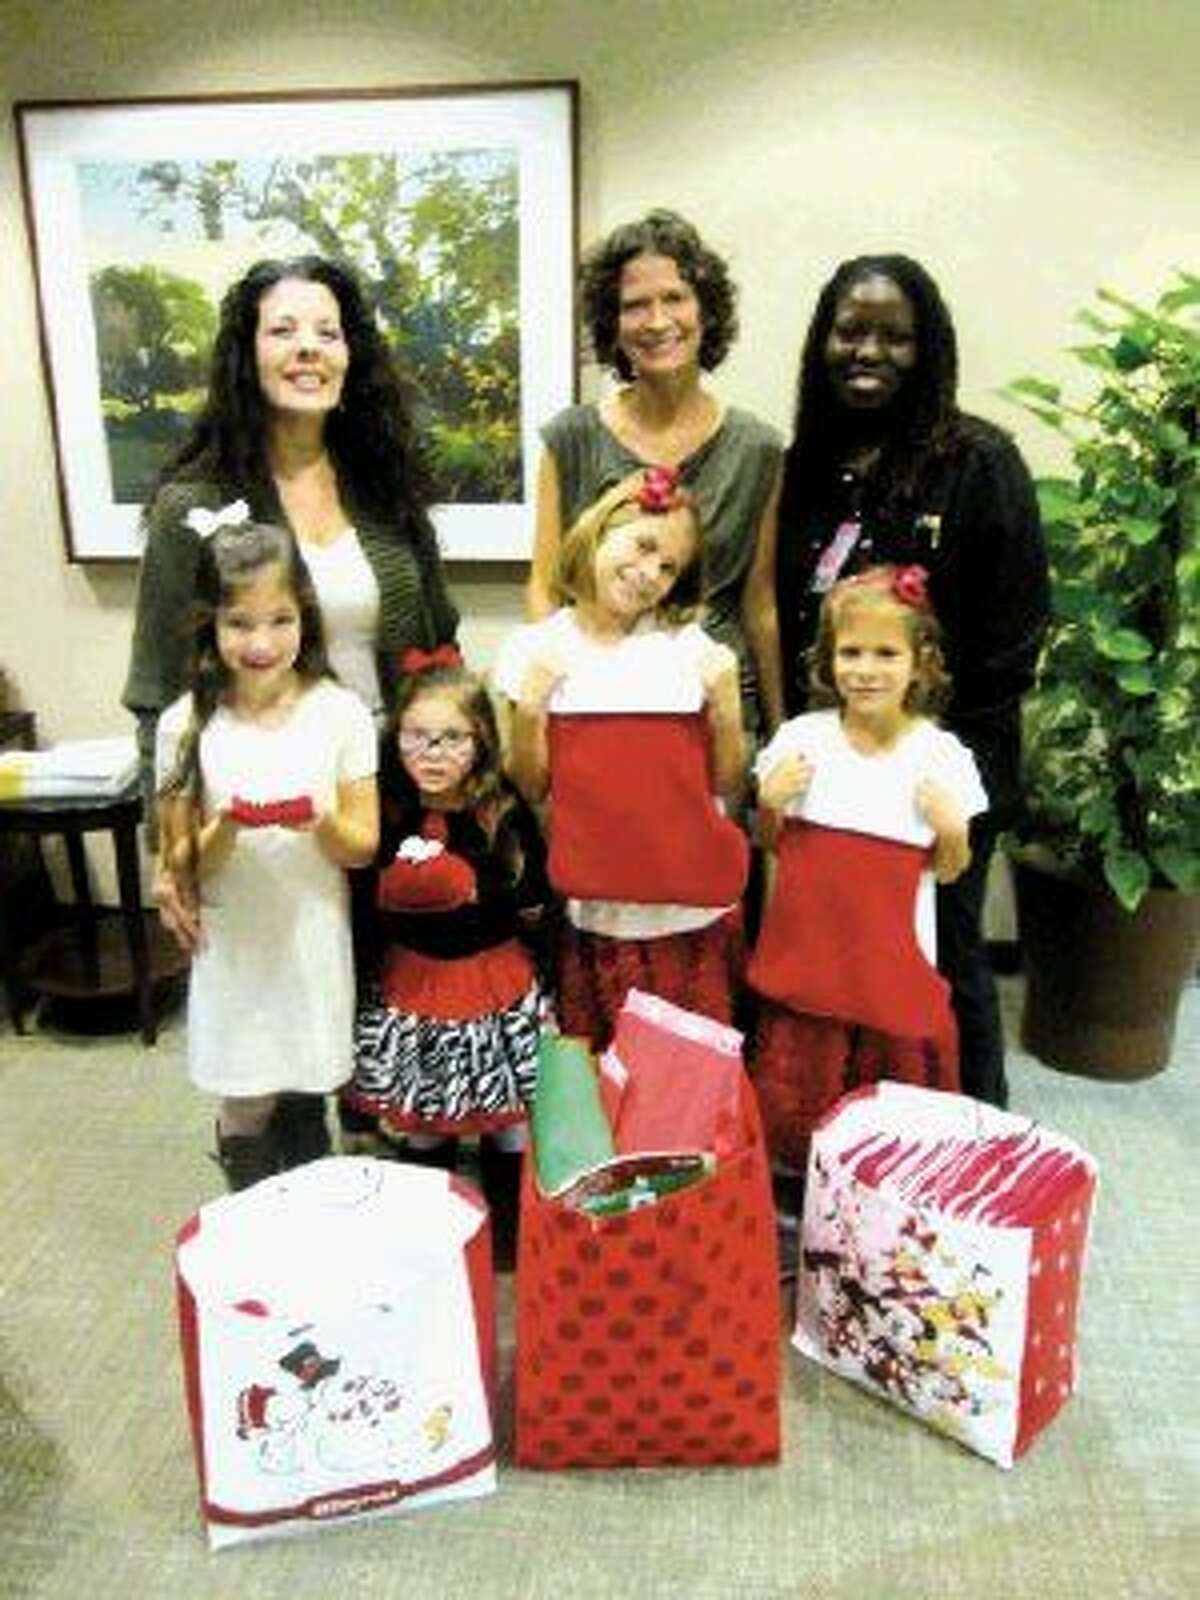 Pictured, from left in the front, are Isabella Simpson, Collins Simpson, Ryhlee Klen and Layla Klen. Behind the girls are their mothers, from left, Christina Simpson and Isabelle Klen and Kina Wright.